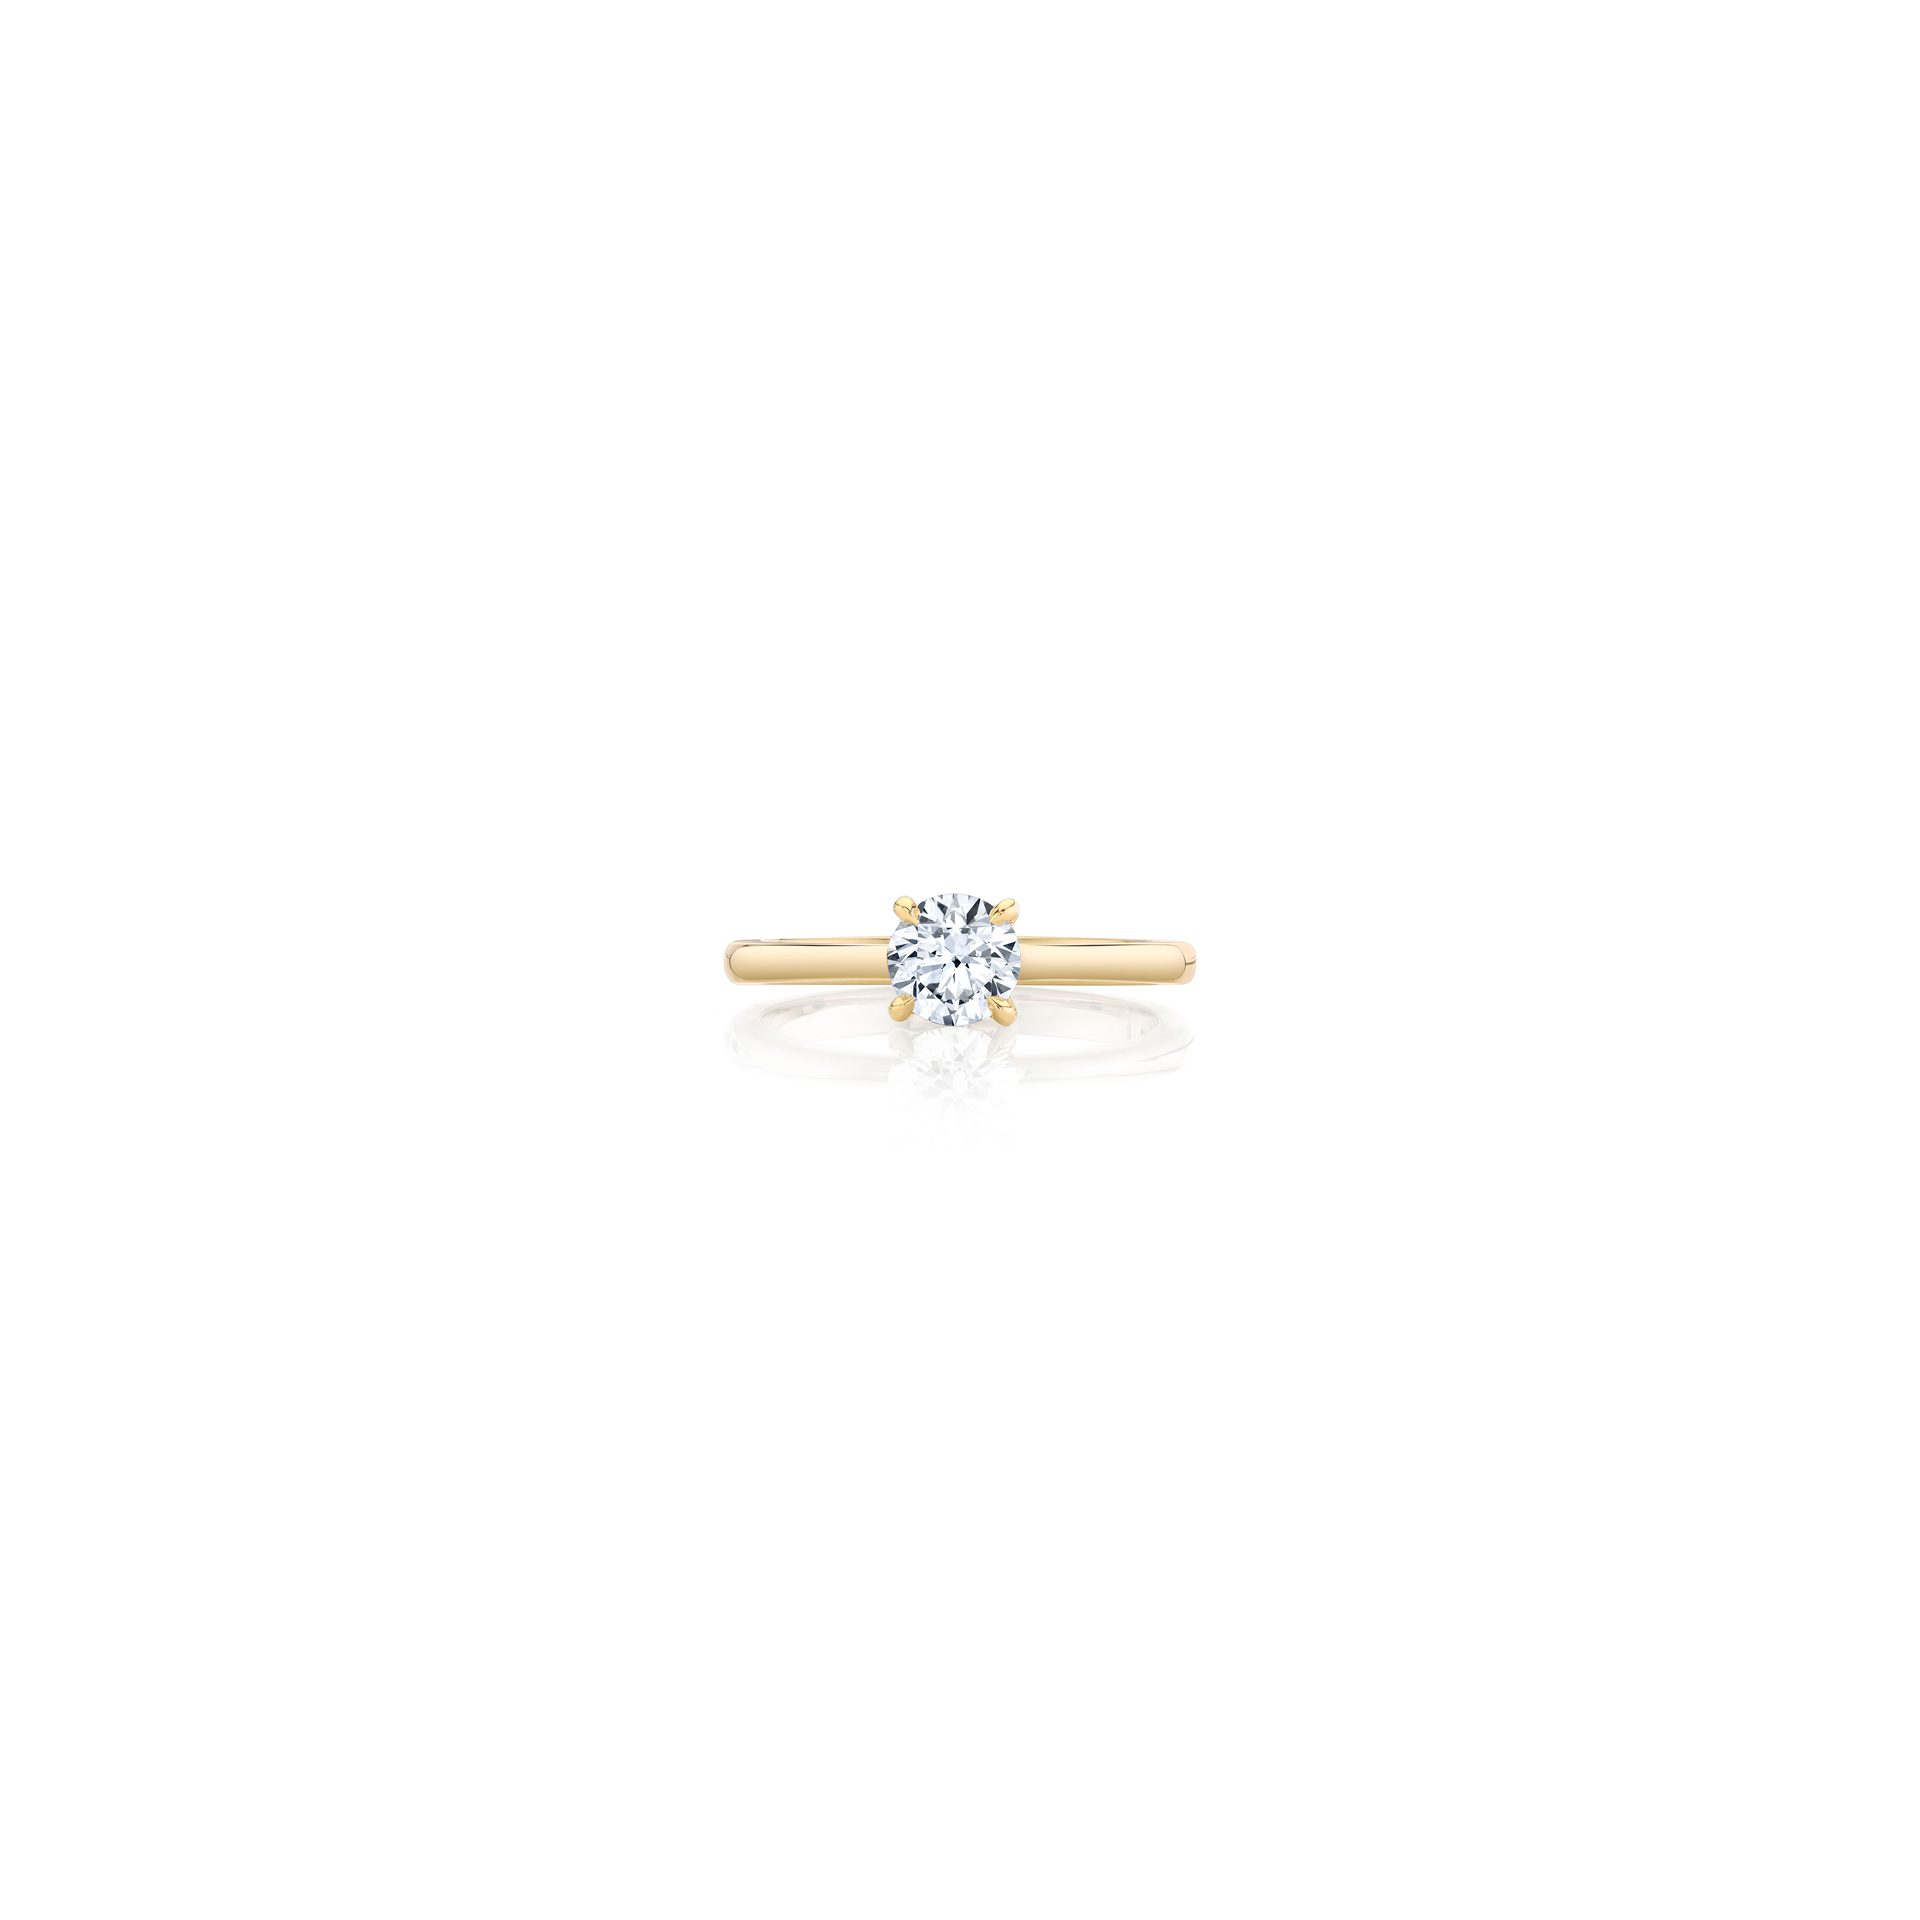 Colette Round Brilliant Solitaire Engagement Ring with a sold band in 18k Yellow Gold Front View by Oui by Jean Dousset